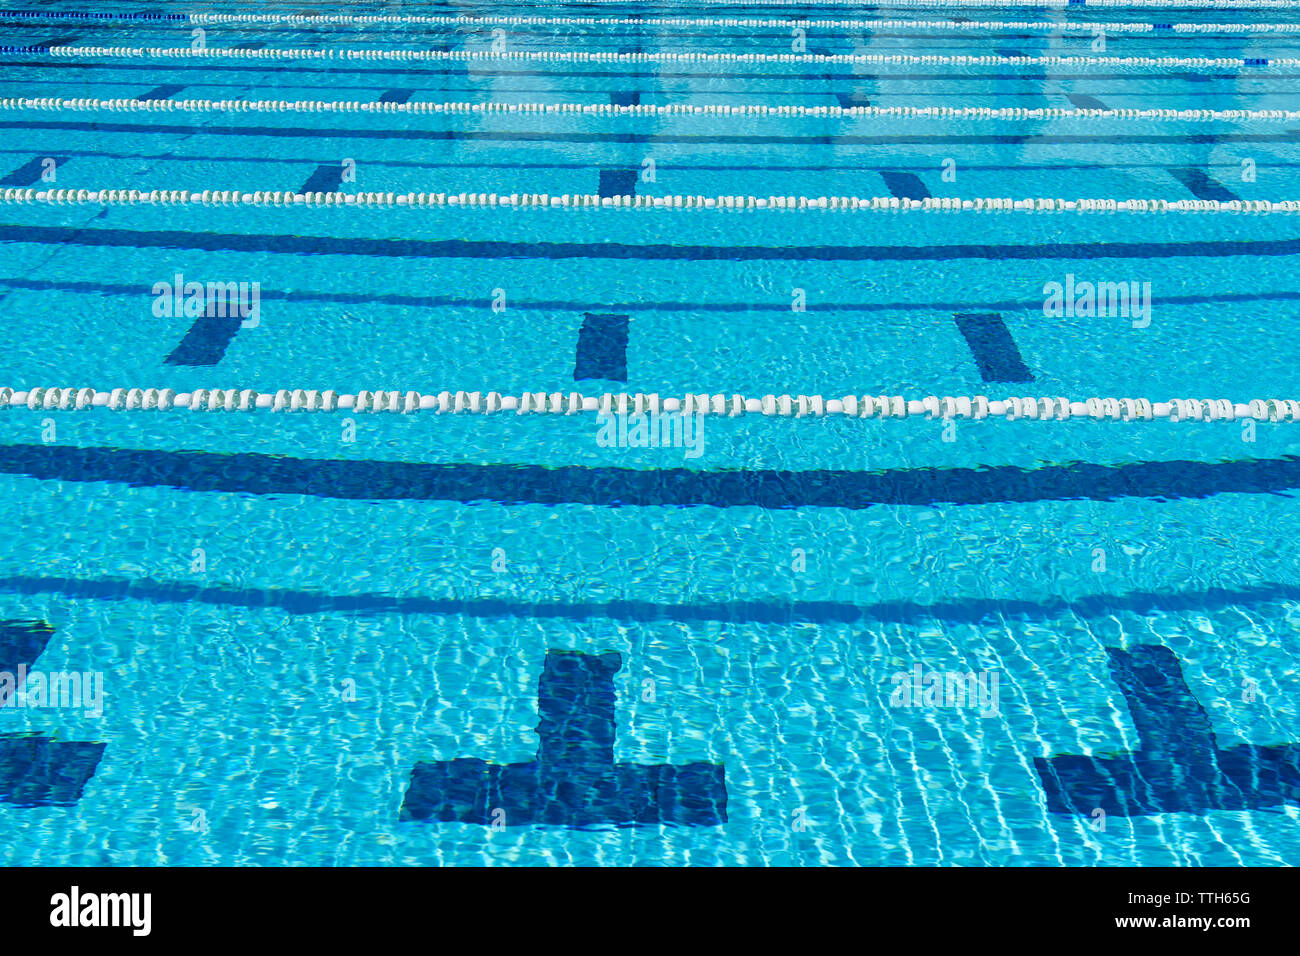 Wide shot of empty outdoor swimming pool - Stock Image